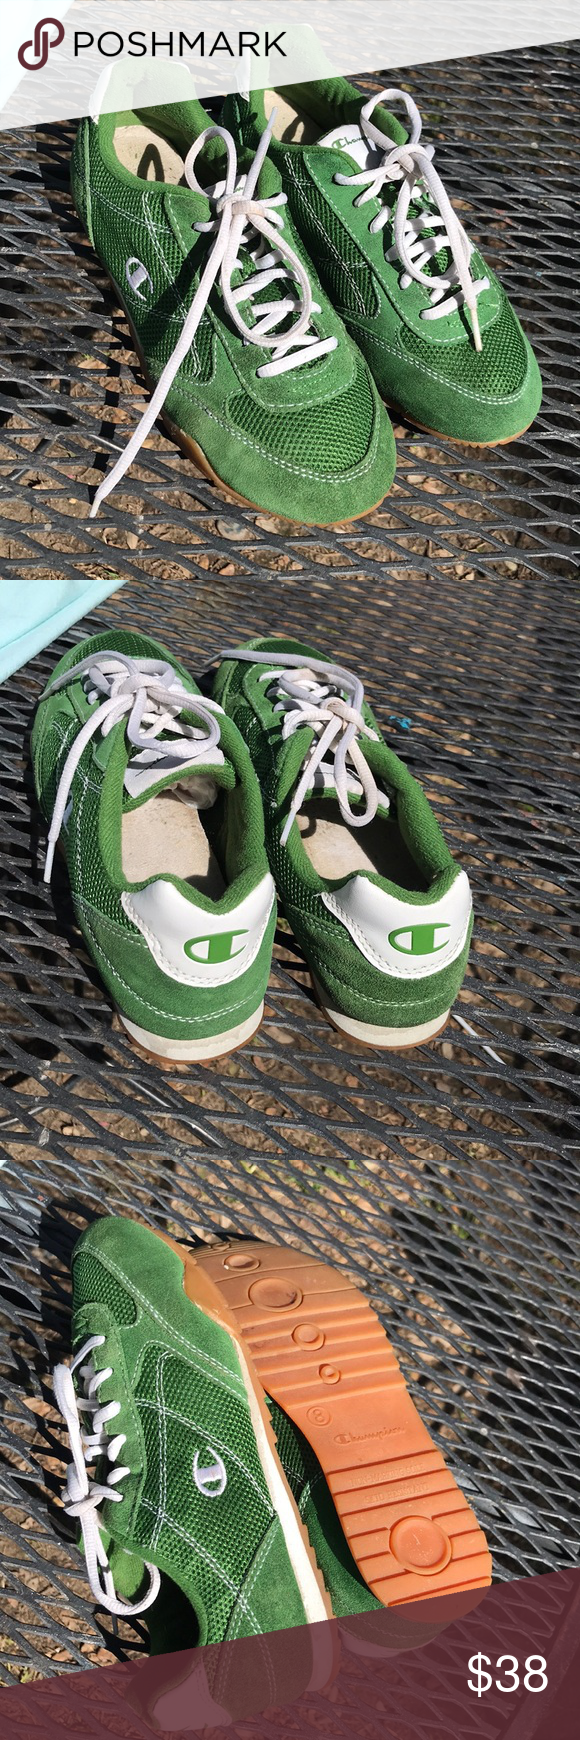 e66c343da Vintage Champion sneakers Green suede sneaker and mess sides. In very good  condition. Champion Shoes Sneakers